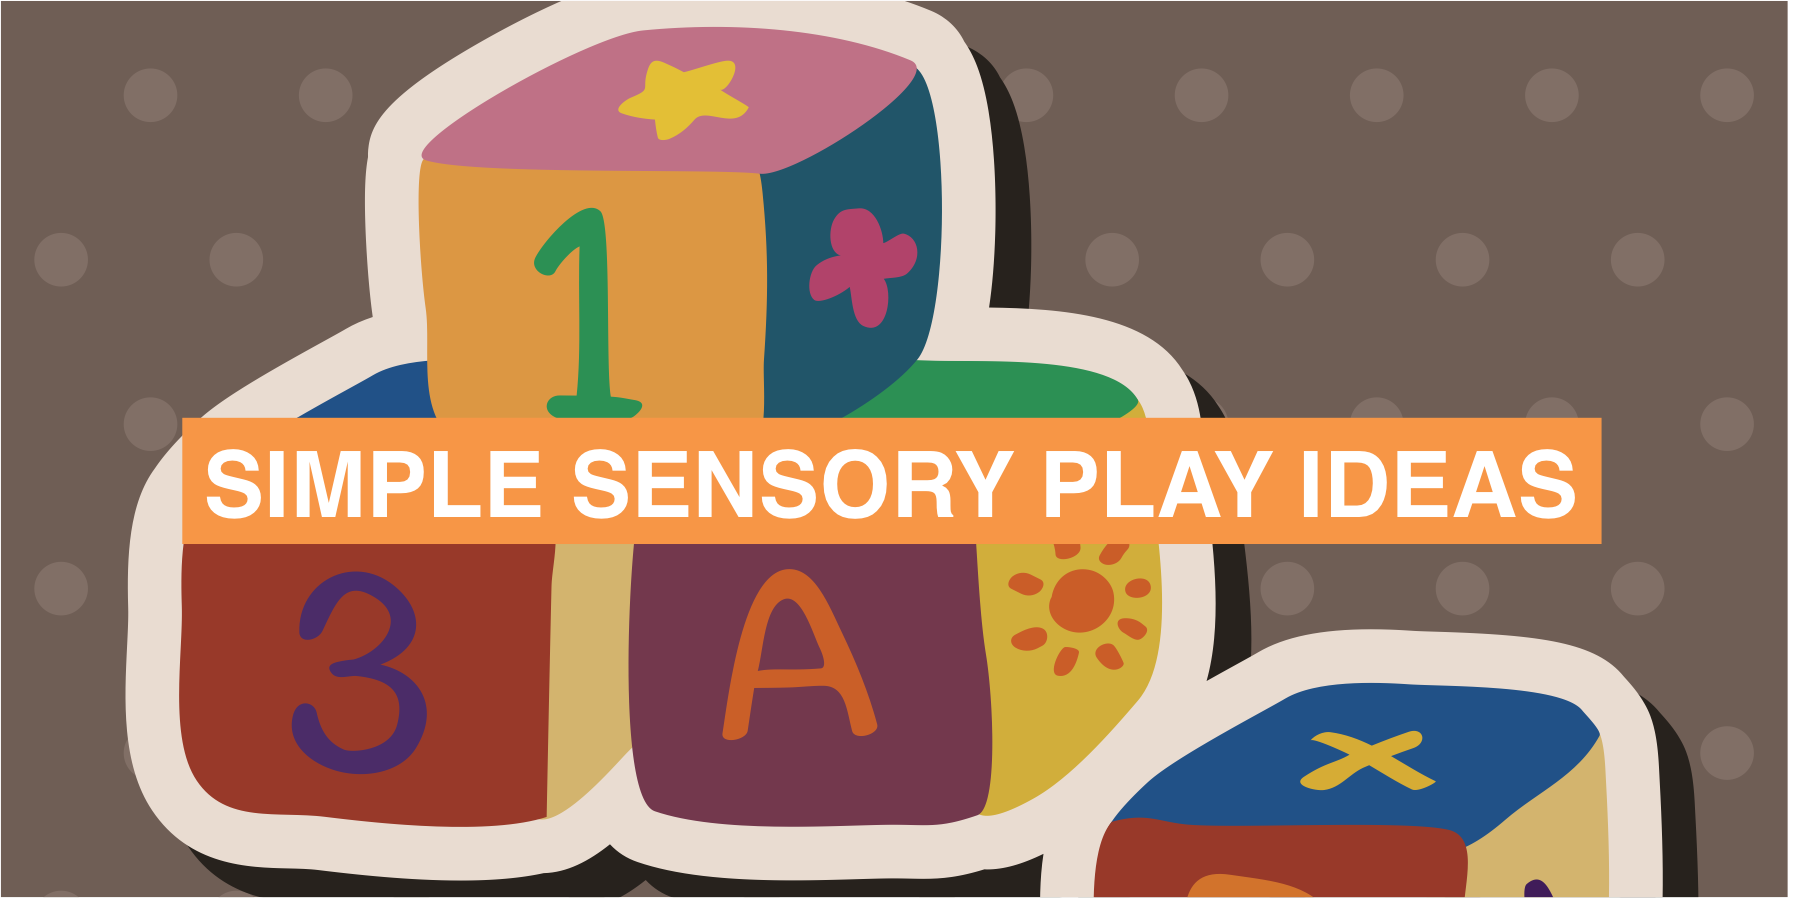 Simple Sensory Play Ideas